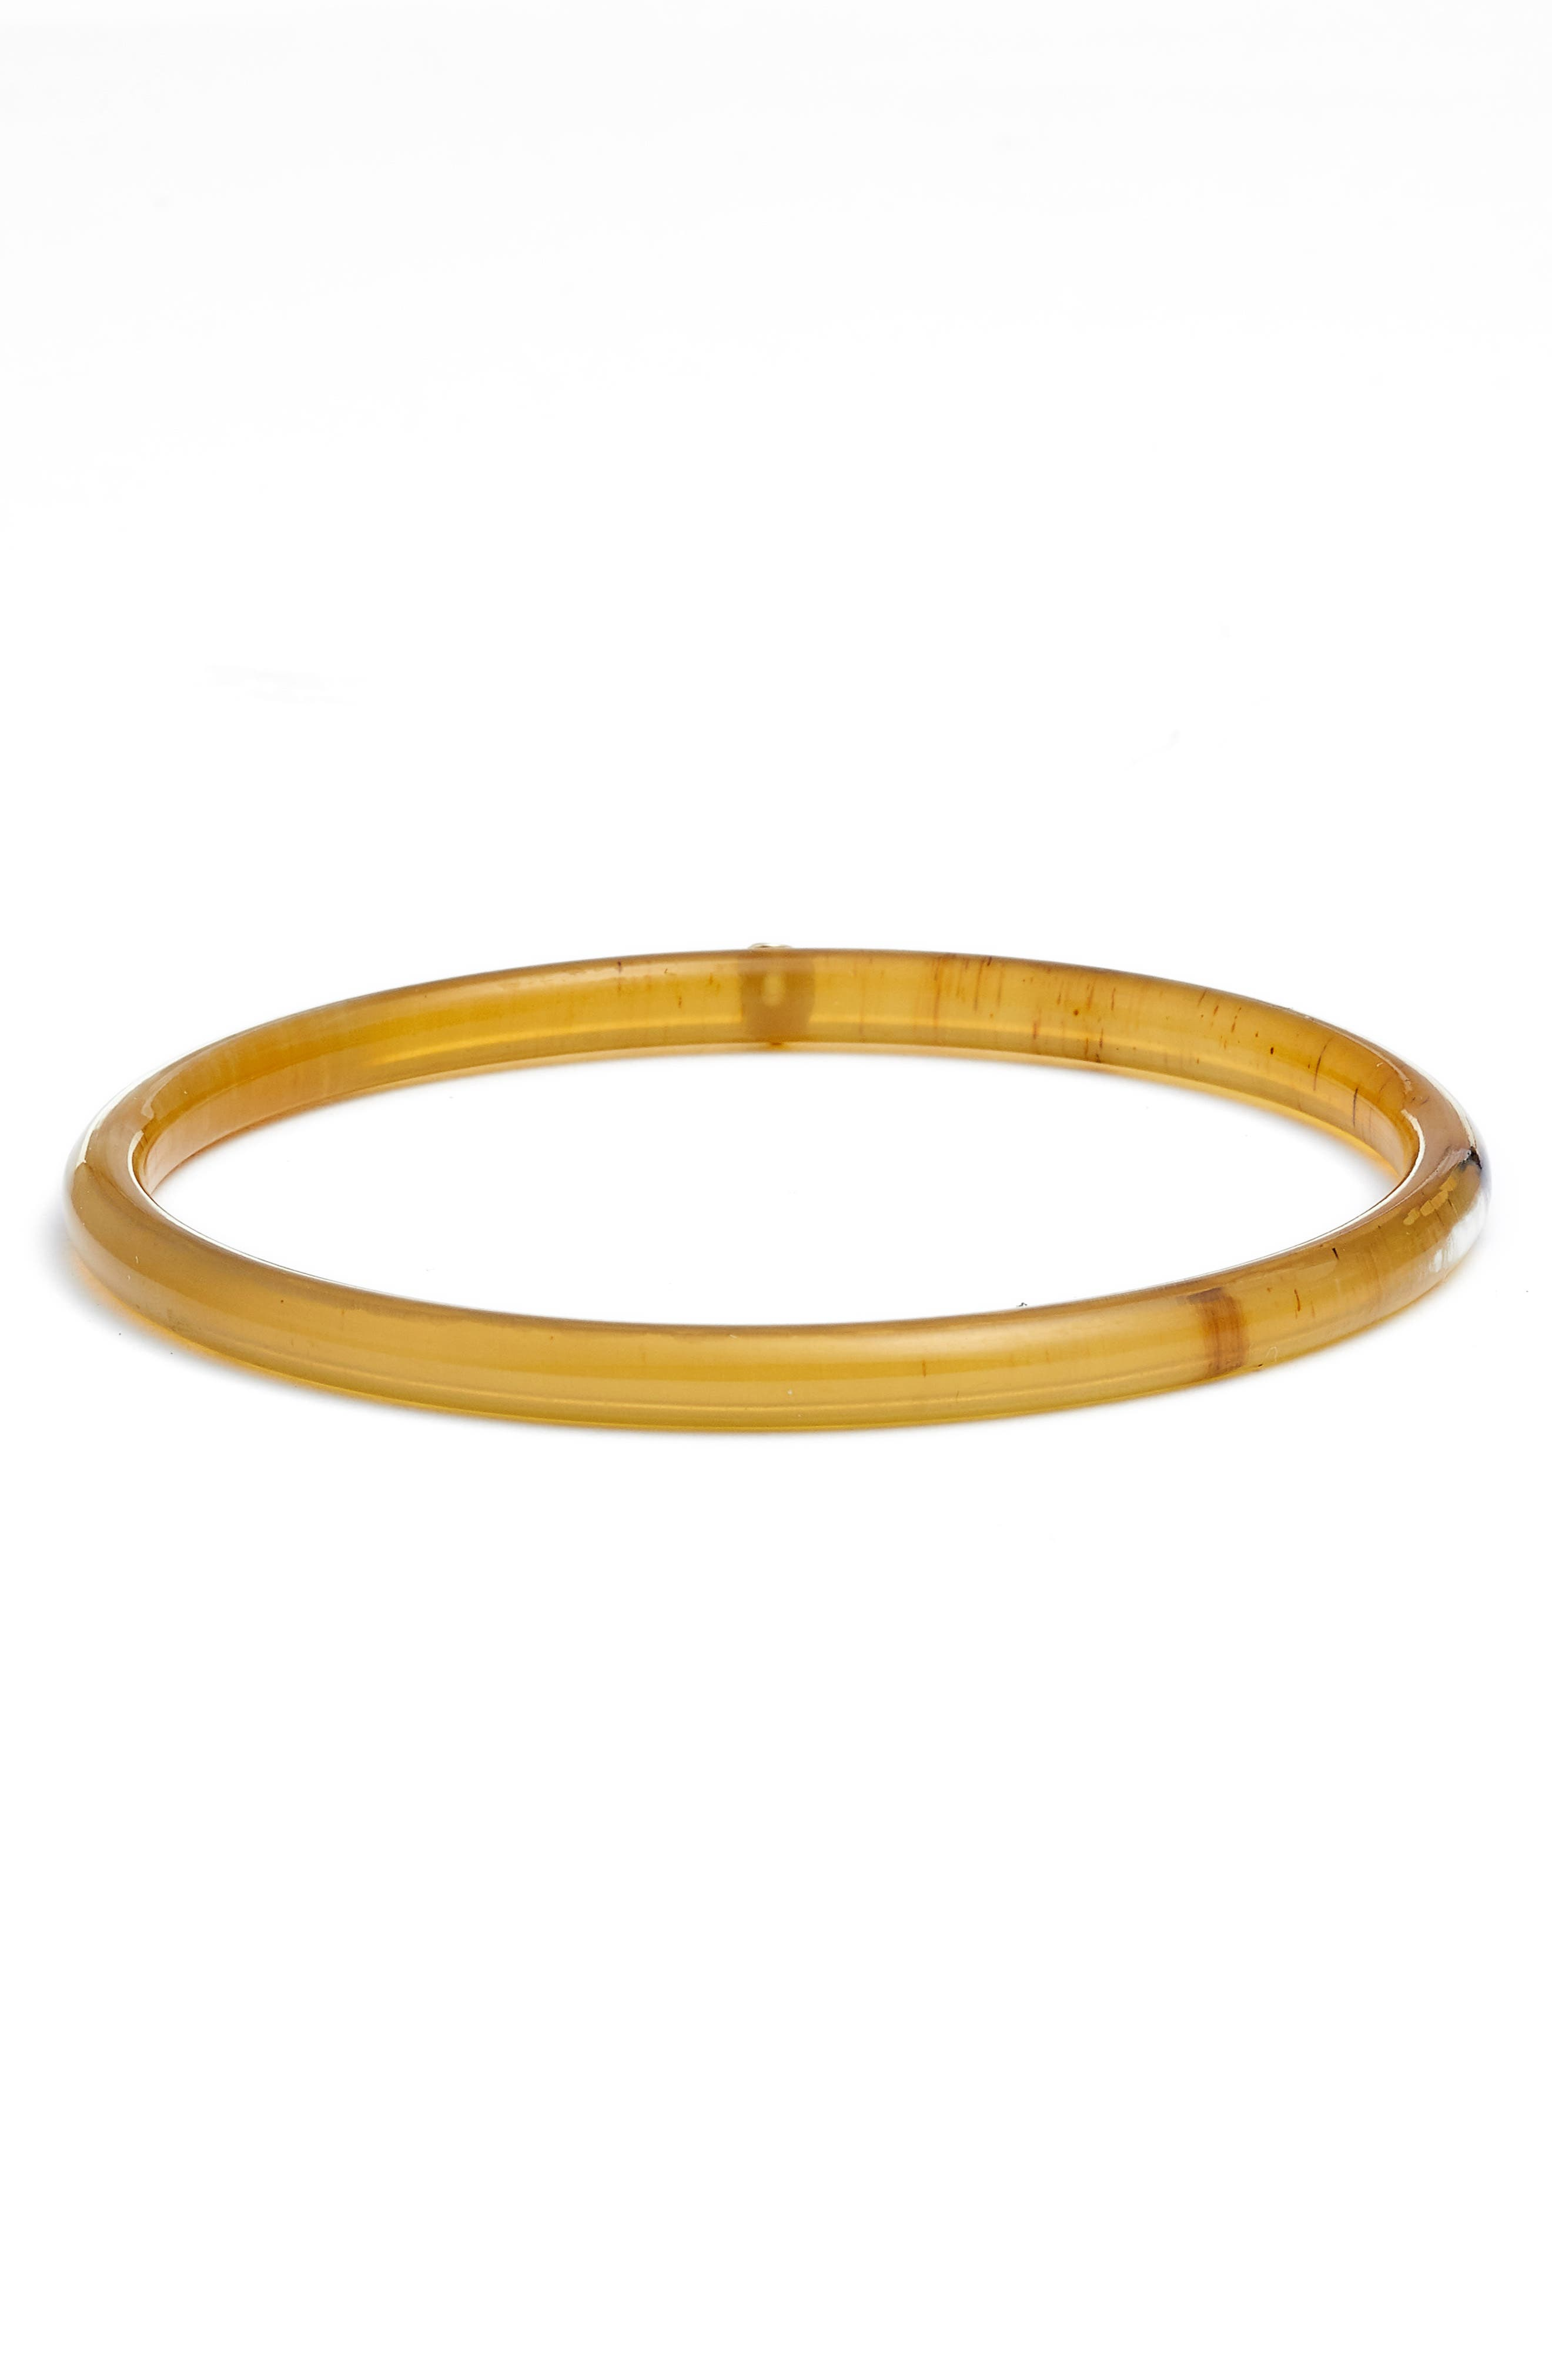 Brown Horn Bangle,                         Main,                         color, Gold